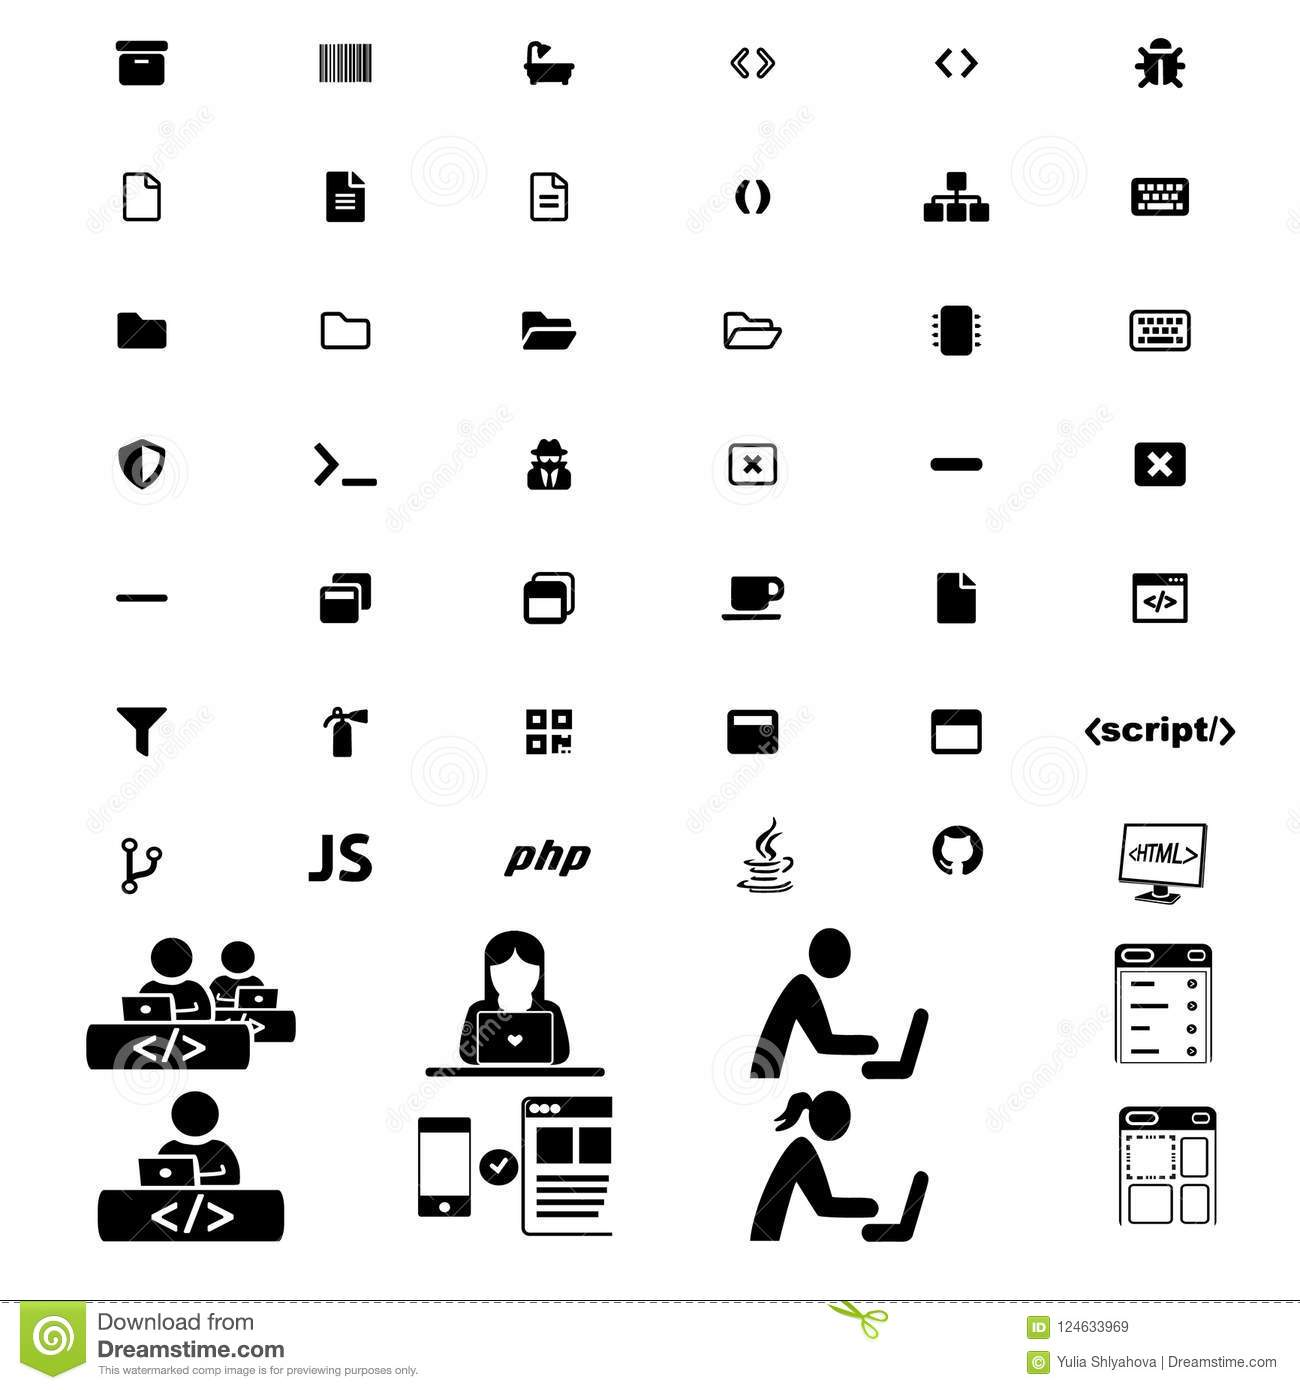 Big modern set of programming icons with people pictograms